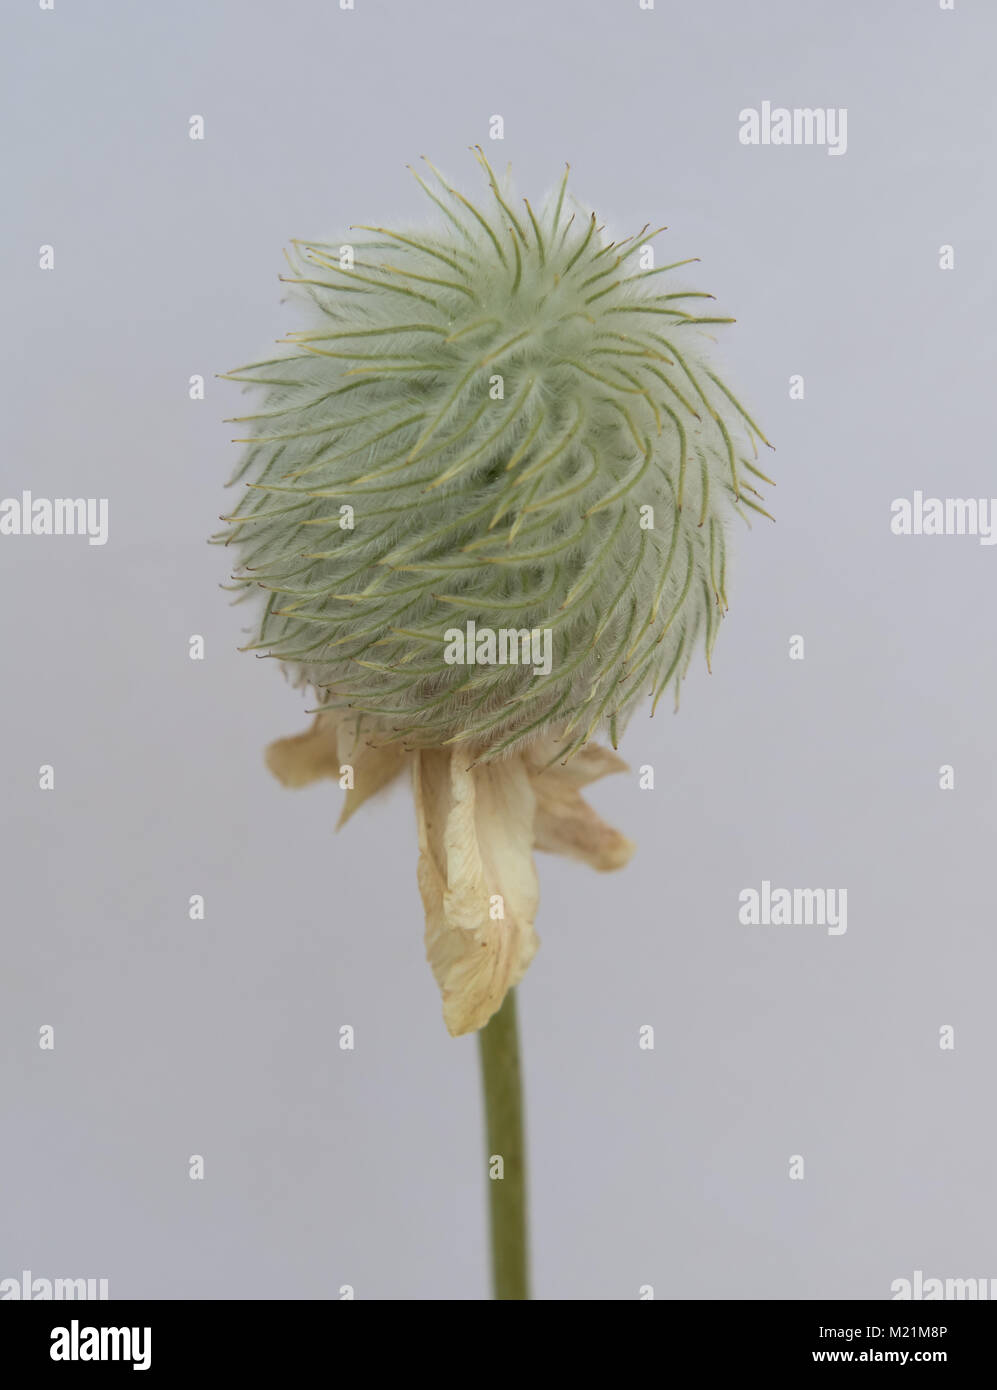 Seed Head of Anemone on Isolated White Background - Stock Image